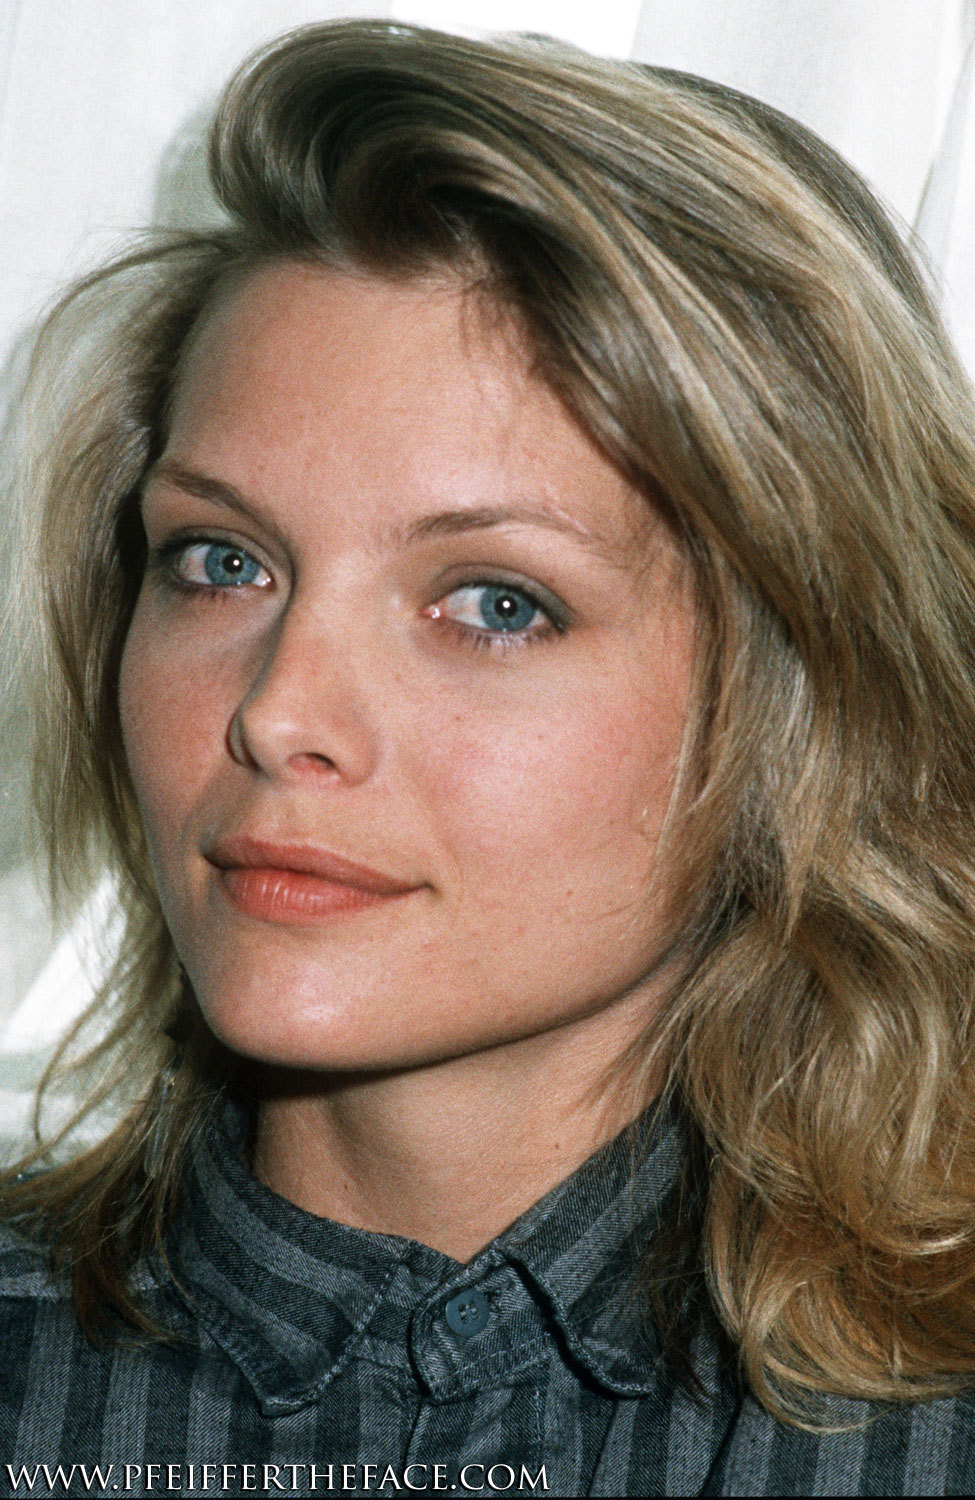 Michelle Pfeiffer - Wallpaper Hot